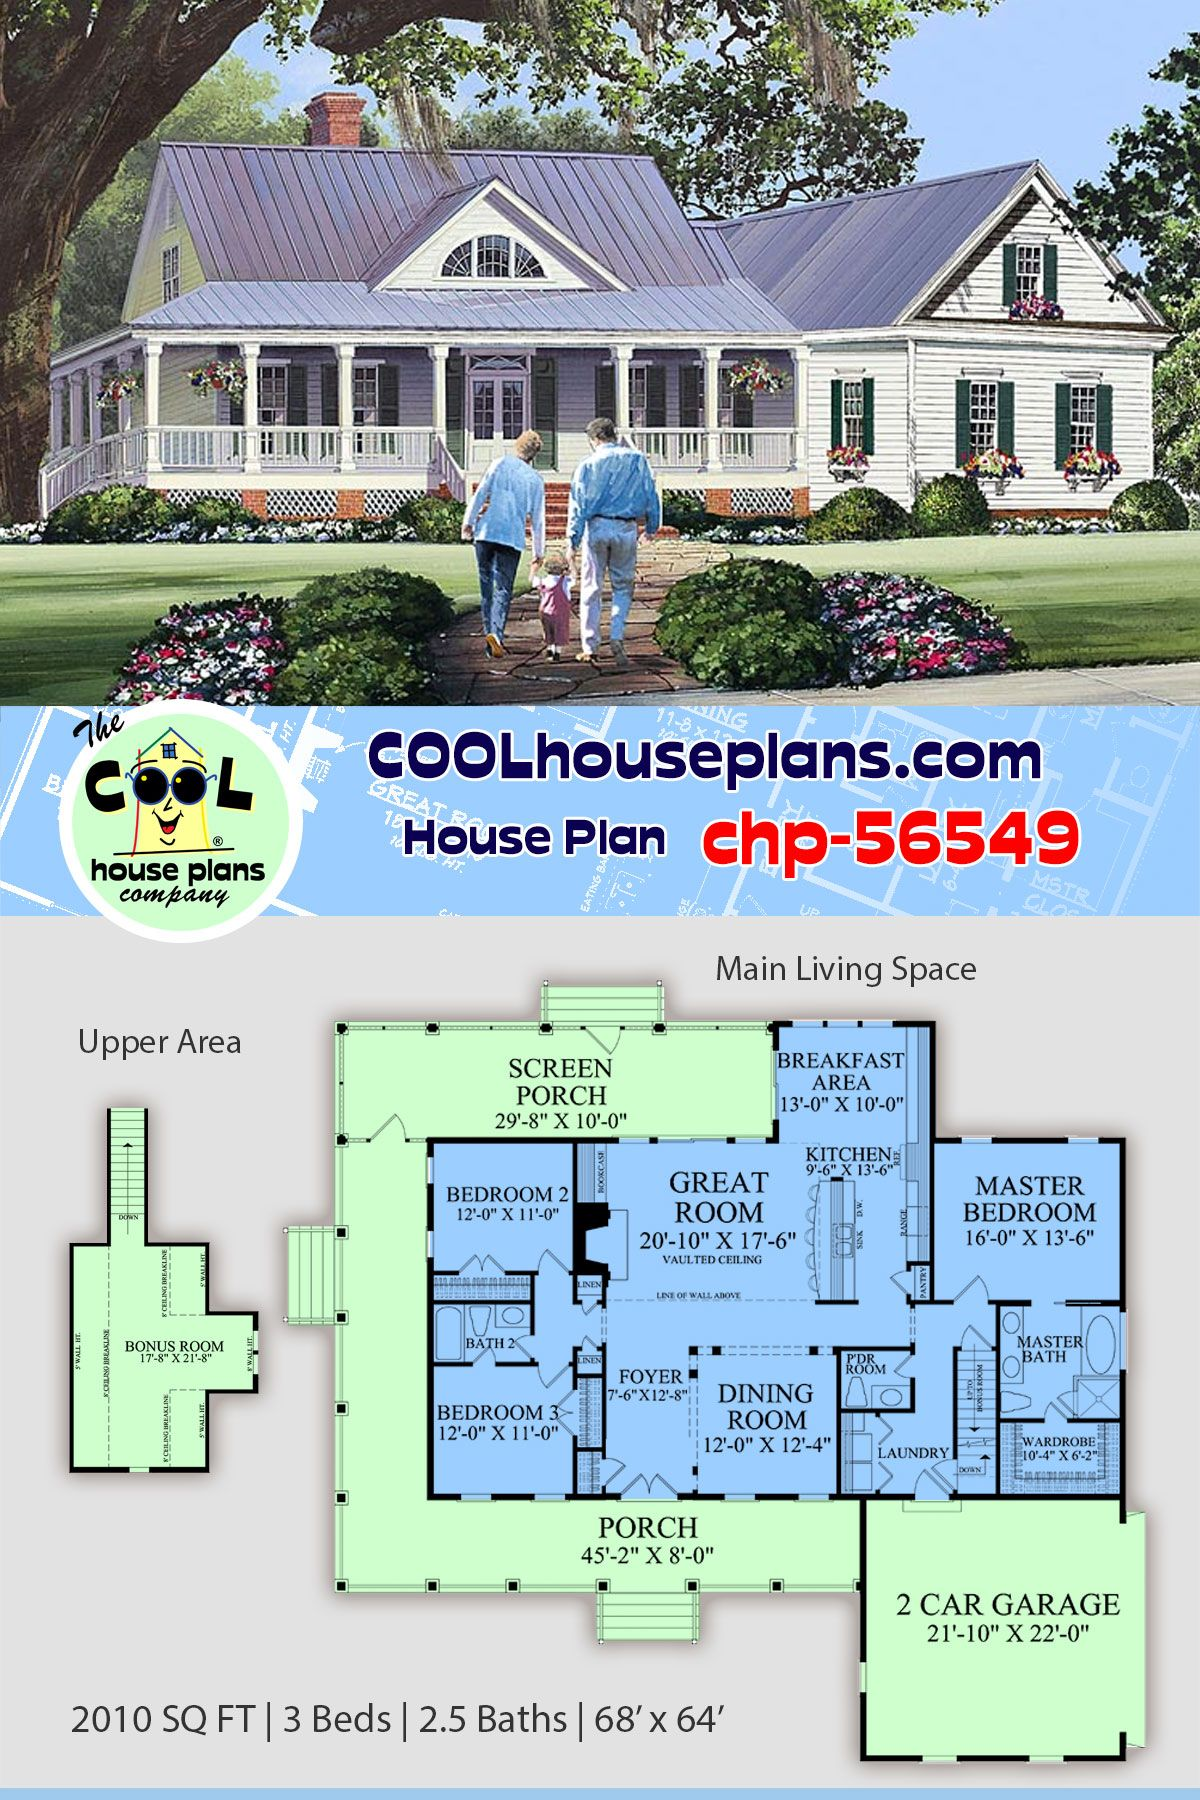 Southern Style Home Plan With Large Wrap Around Porch Screened Porch For The Country Life Southern House Plans Basement House Plans Porch House Plans